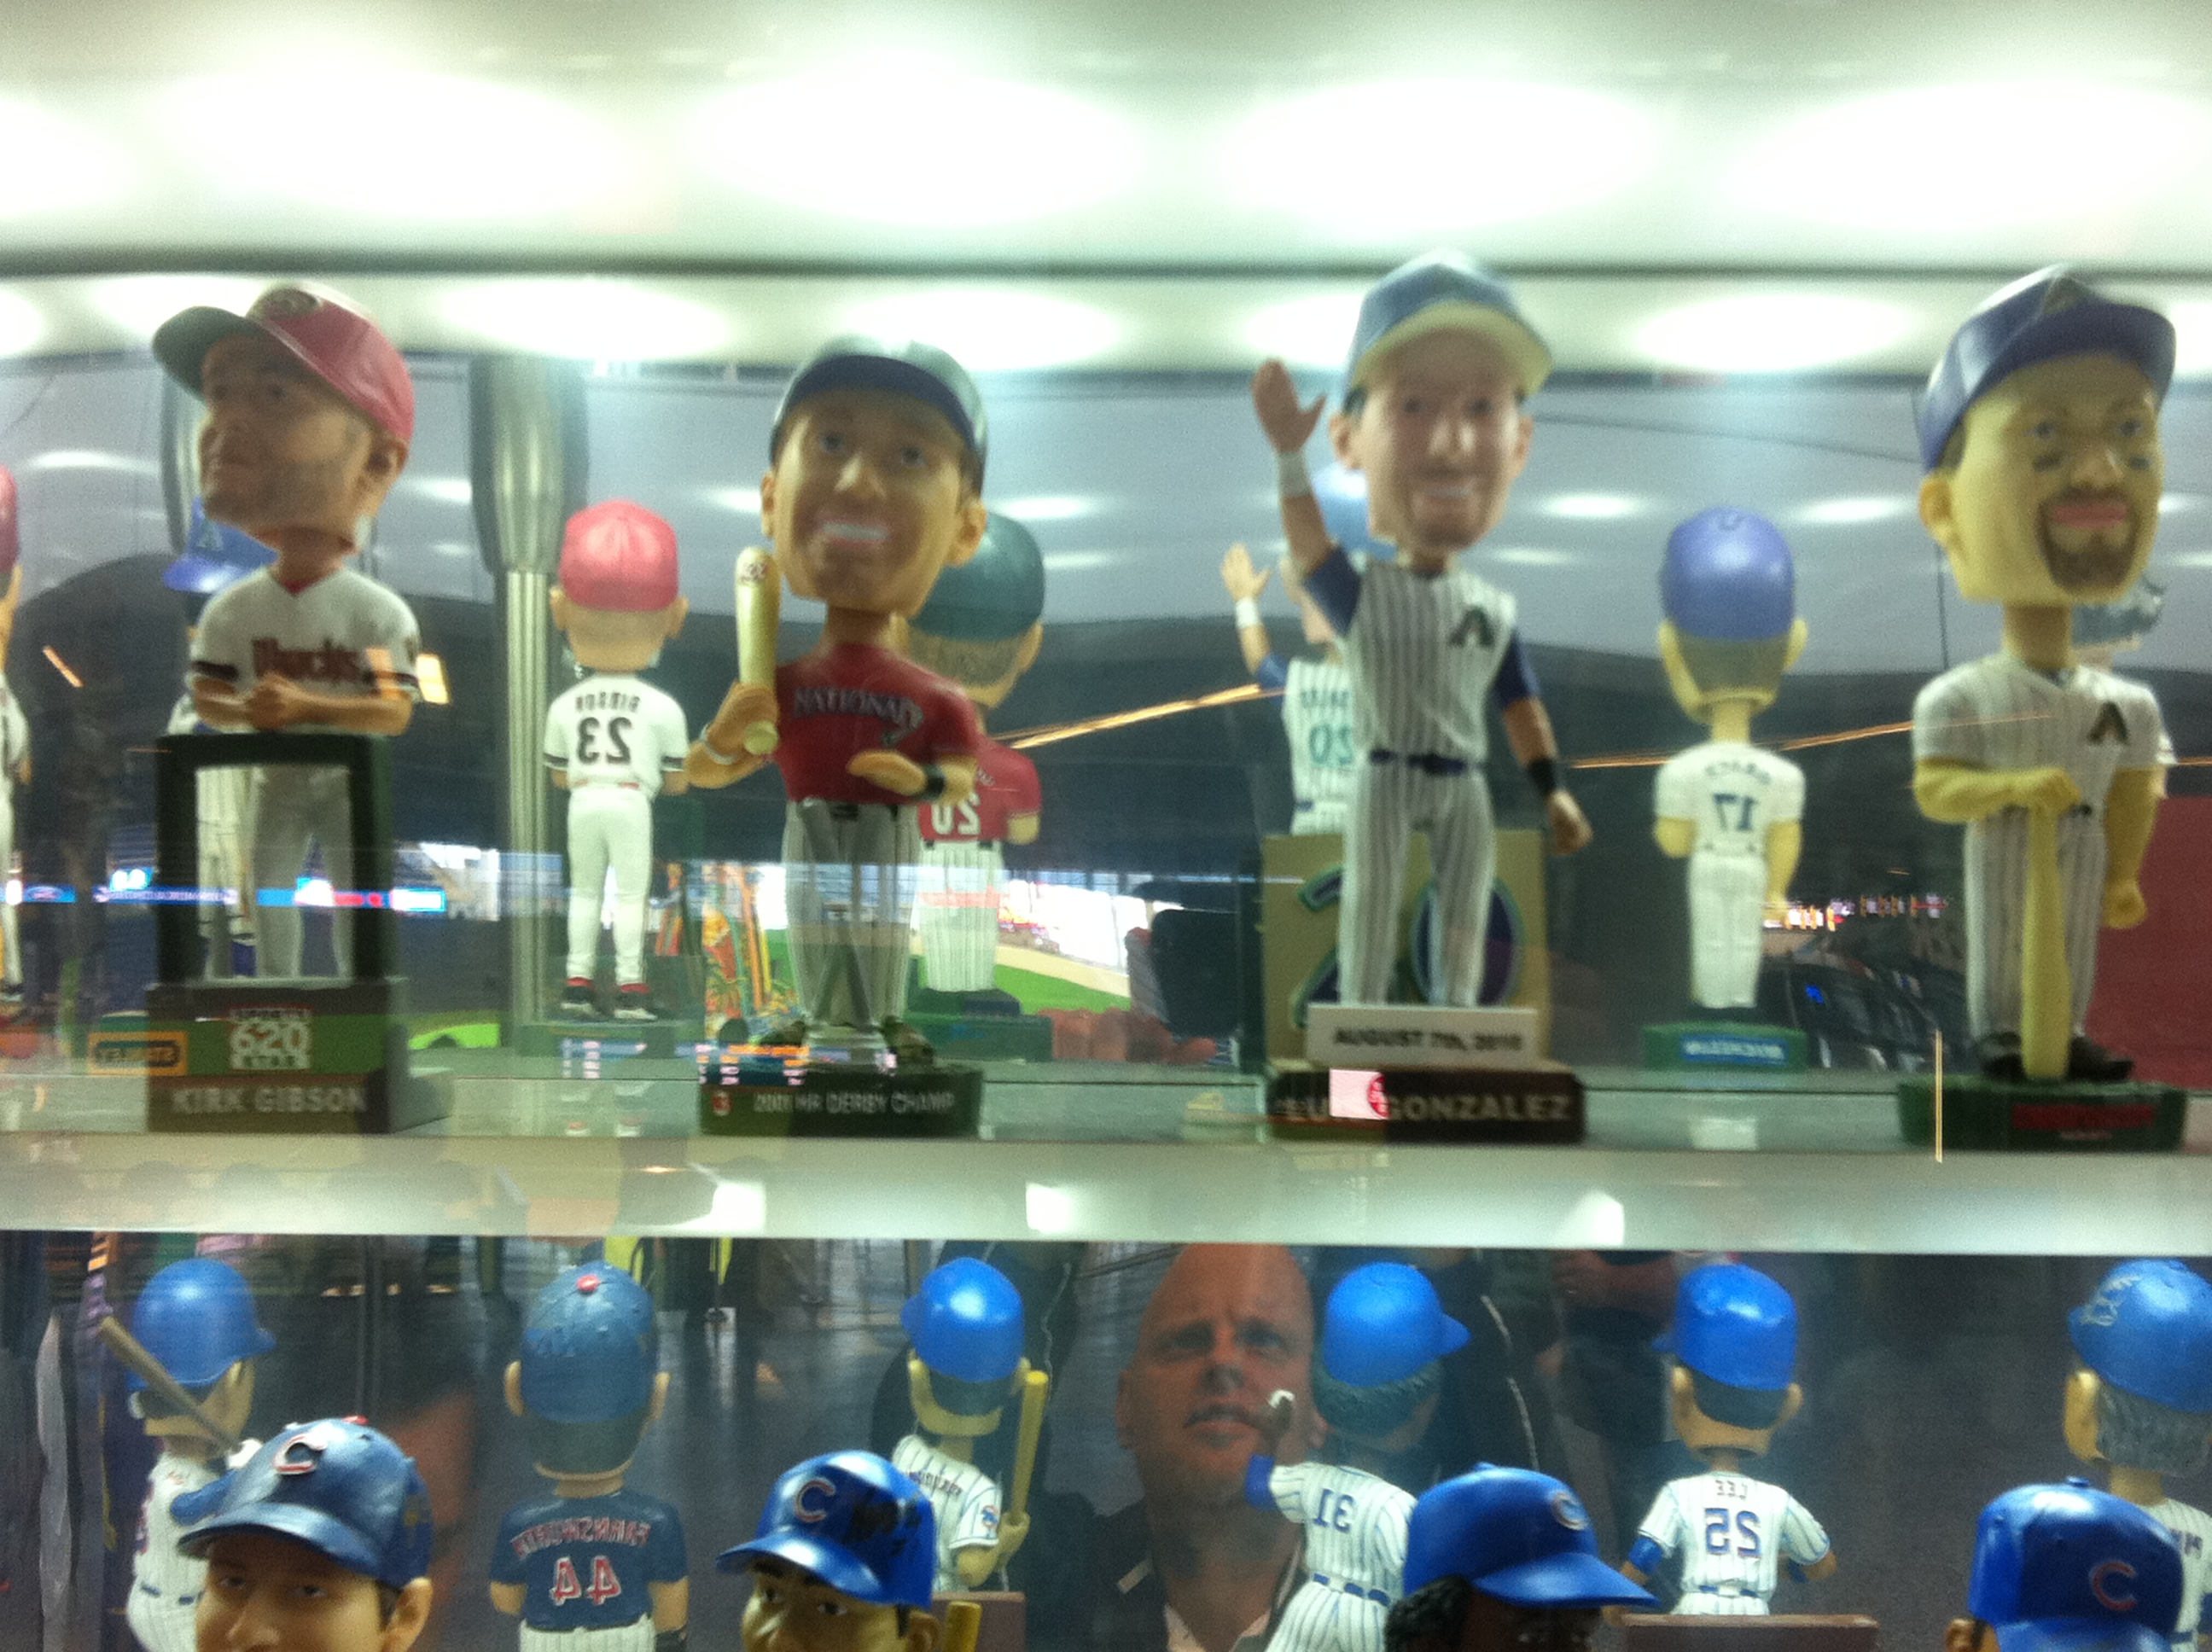 Each team has a section of bobbleheads. Here is the D-backs.